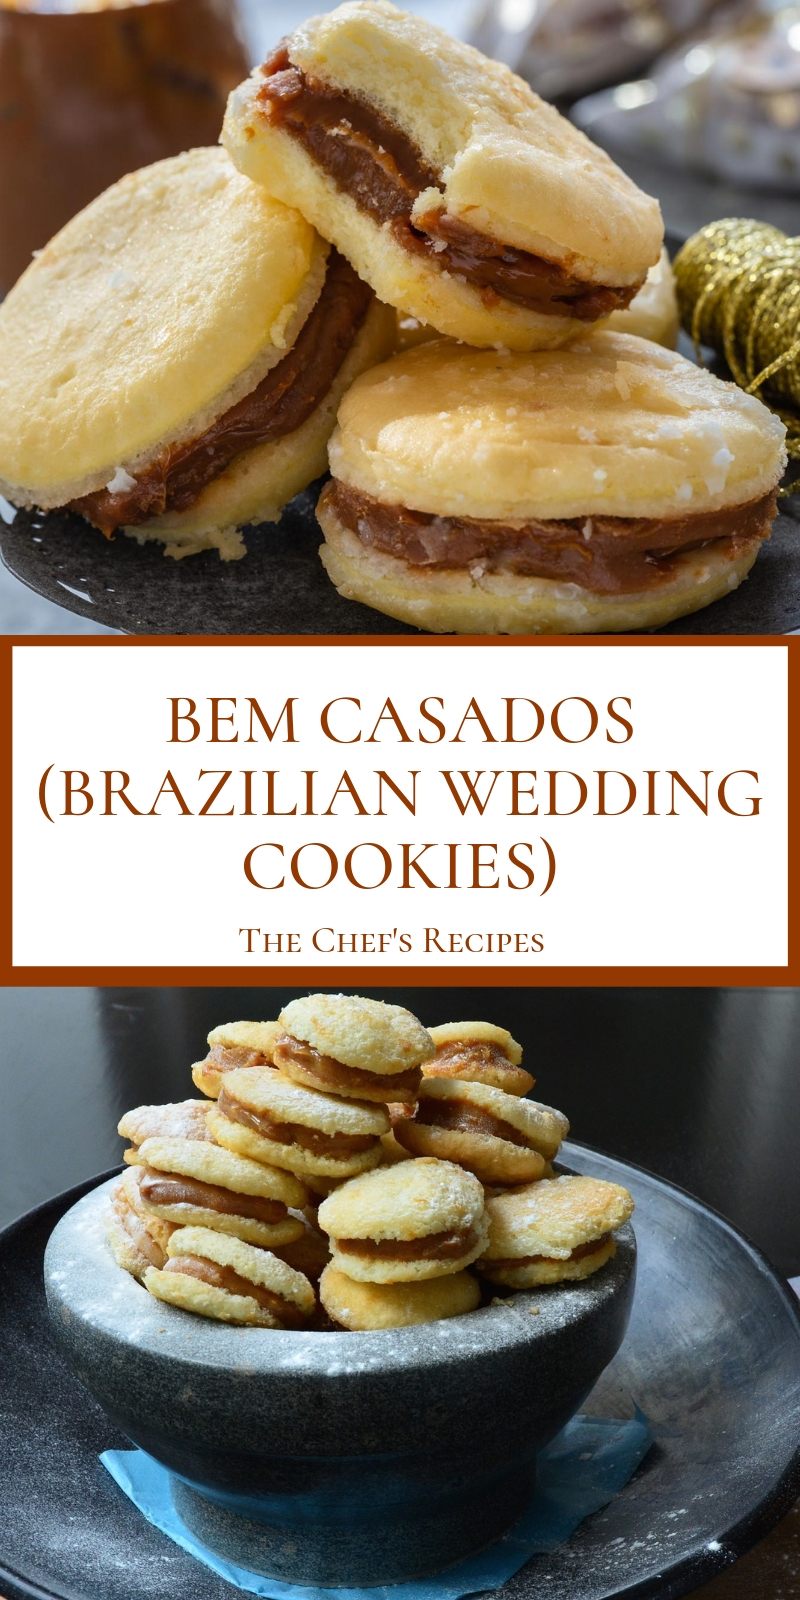 BEM CASADOS (BRAZILIAN WEDDING COOKIES)